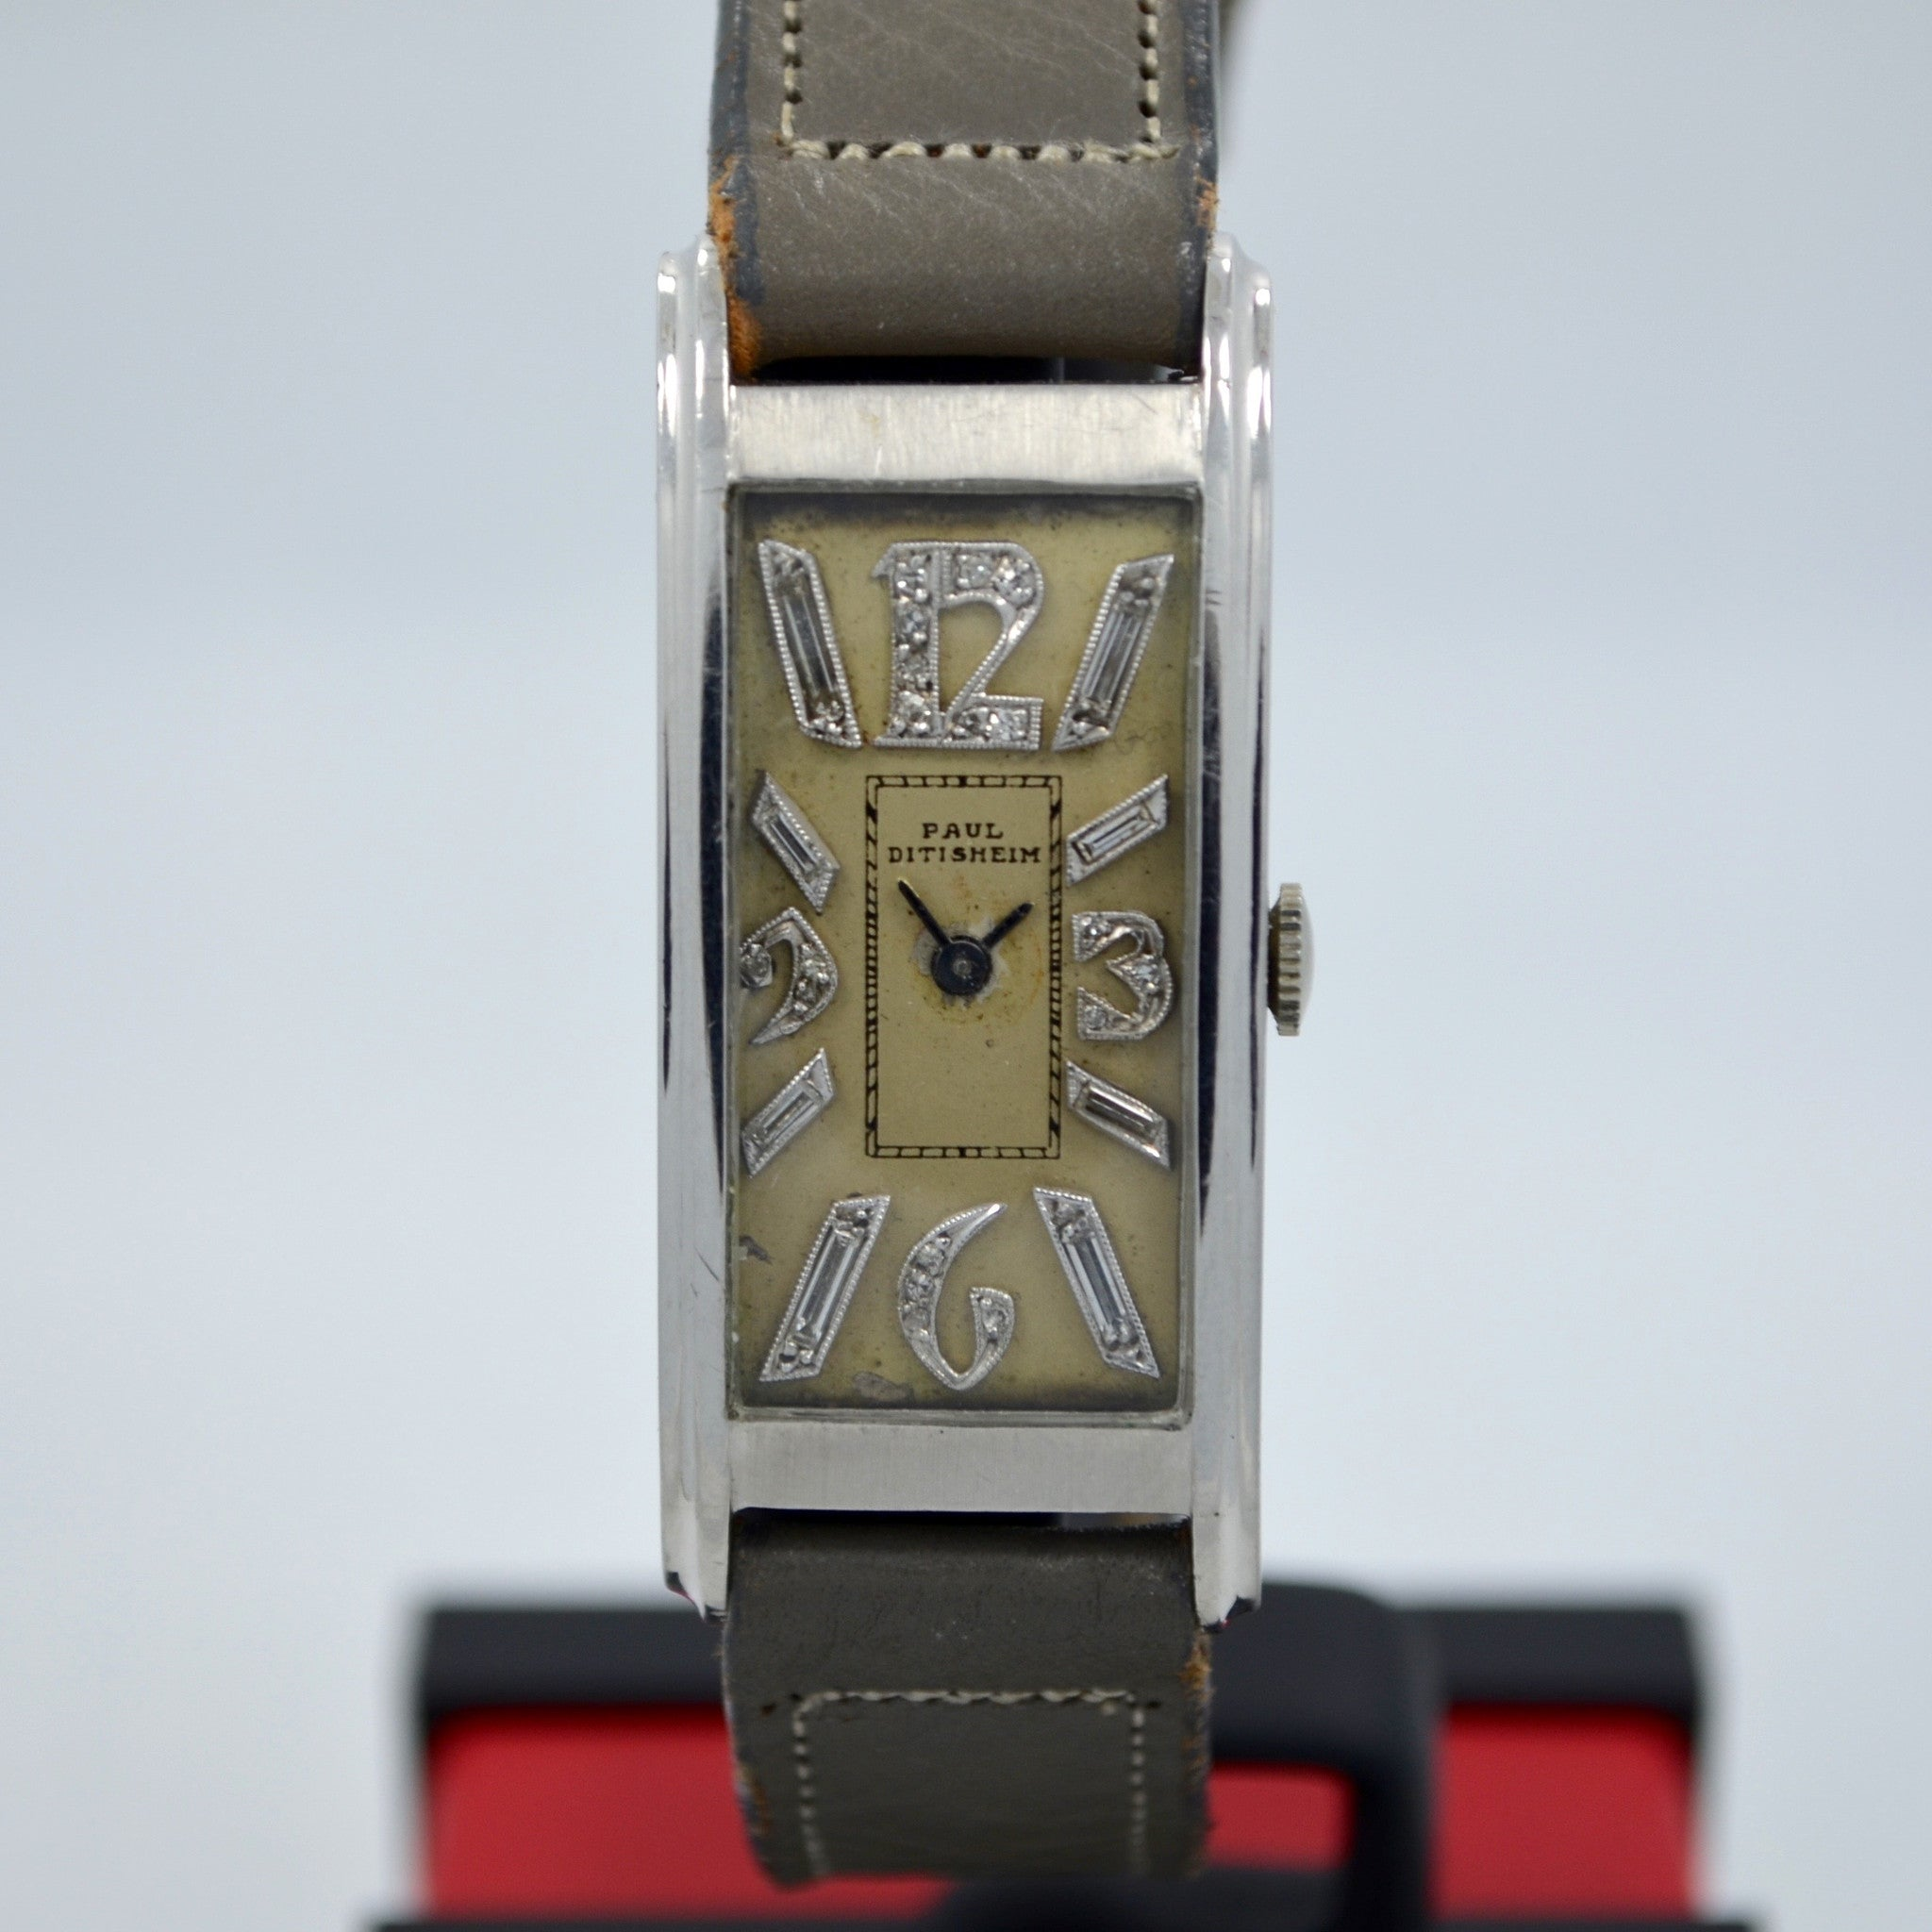 Vintage Paul Ditisheim Platinum Art Deco Diamond Dial Manual Watch - Hashtag Watch Company